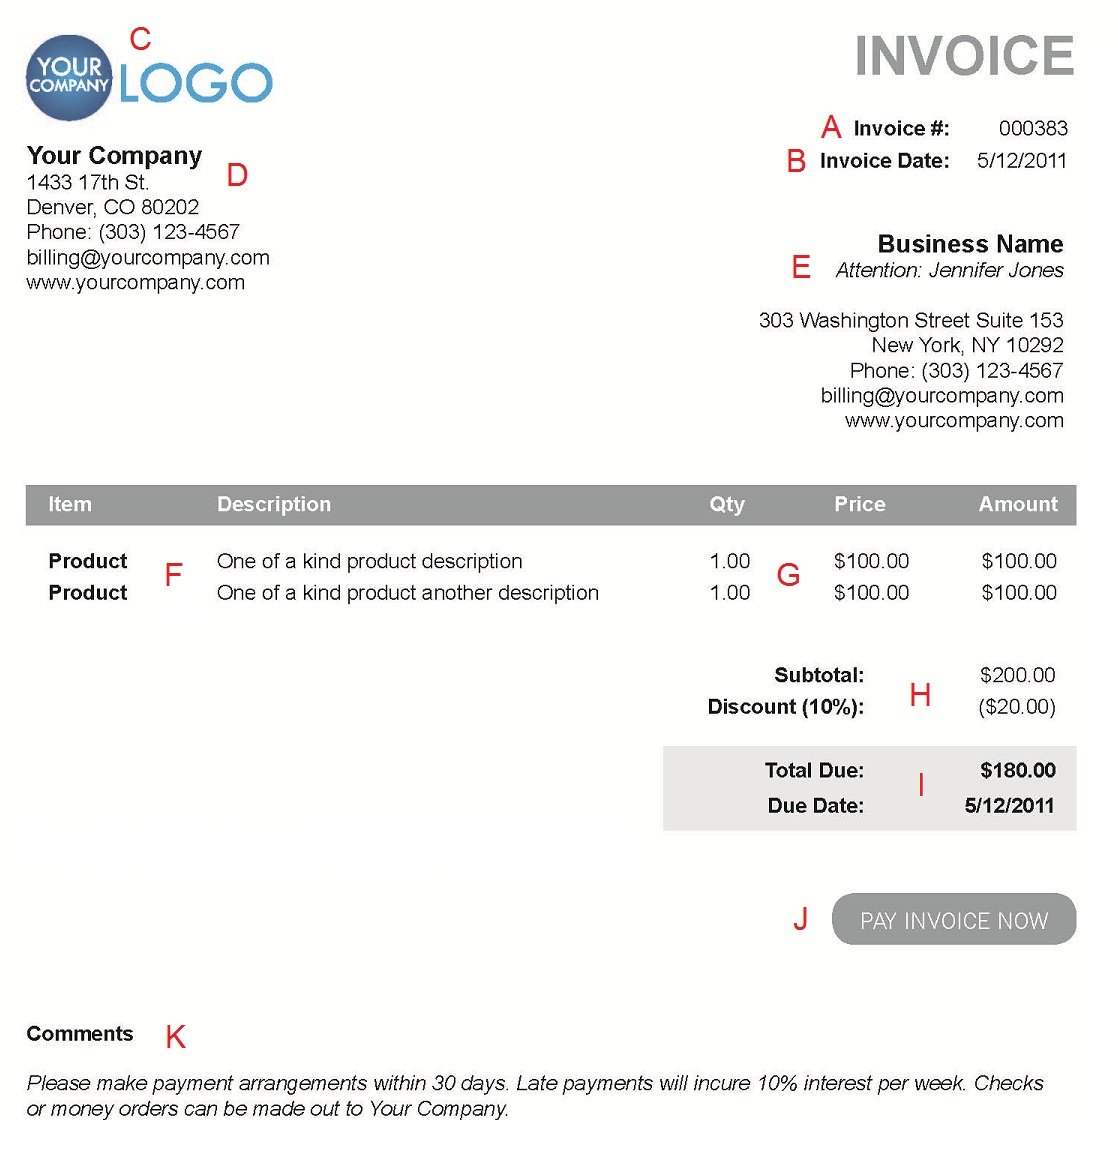 Thassosus  Pleasant The  Different Sections Of An Electronic Payment Invoice With Engaging A  With Endearing Meaning Of Invoice Also How To Make An Invoice In Excel In Addition How To Pay An Invoice And Invoice Google Docs As Well As Ebay Invoices Additionally Invoice Pro From Paysimplecom With Thassosus  Engaging The  Different Sections Of An Electronic Payment Invoice With Endearing A  And Pleasant Meaning Of Invoice Also How To Make An Invoice In Excel In Addition How To Pay An Invoice From Paysimplecom